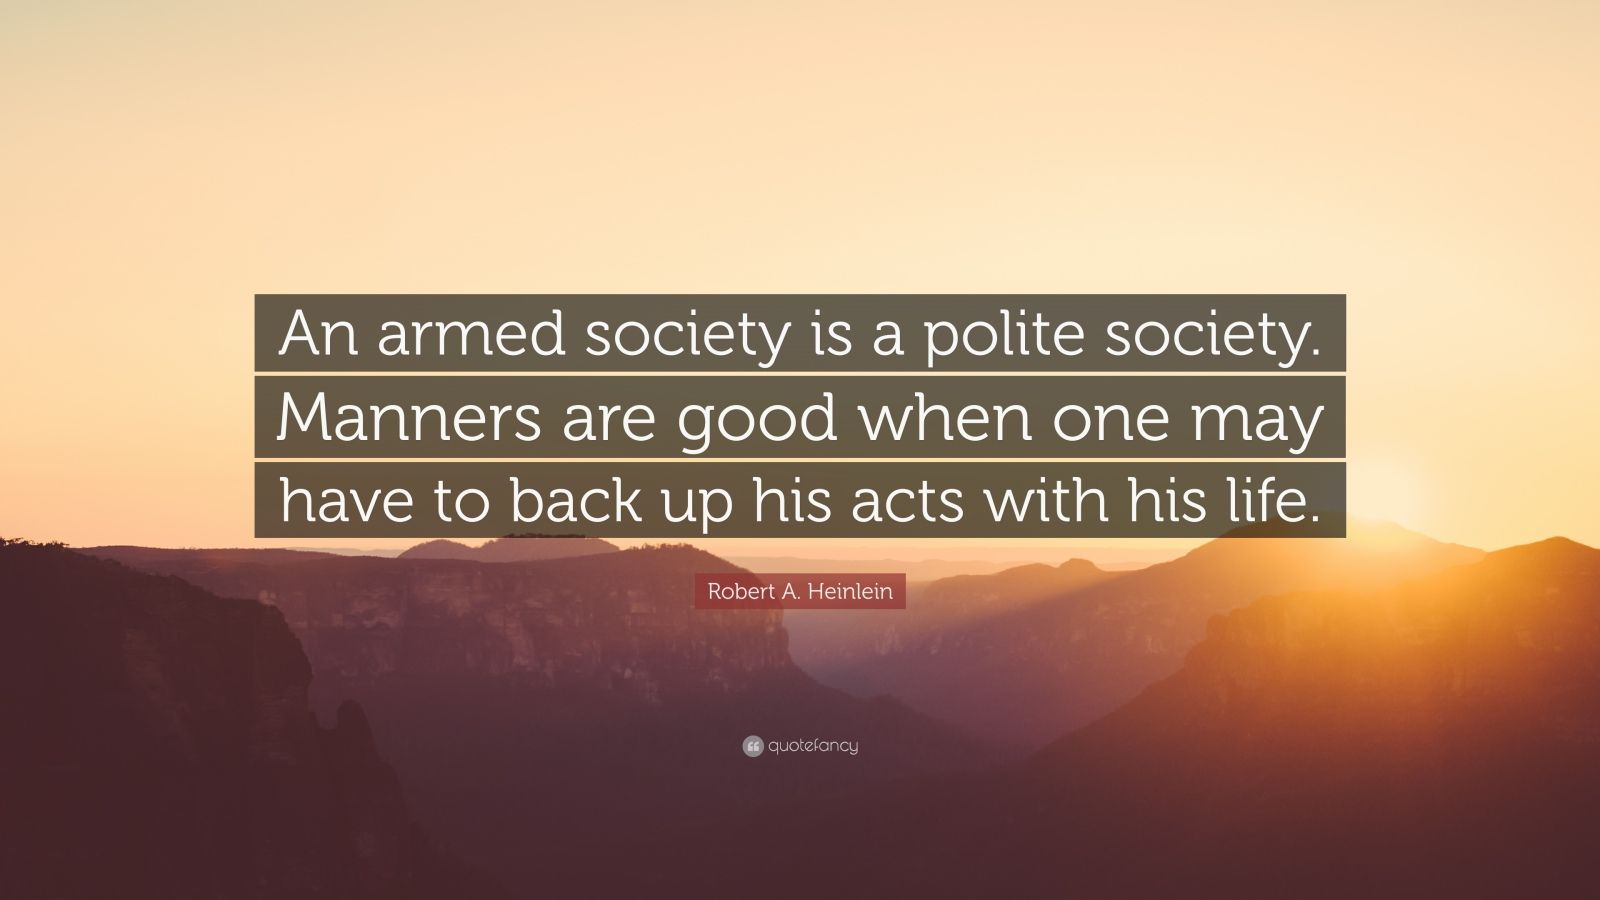 good manners and polite society